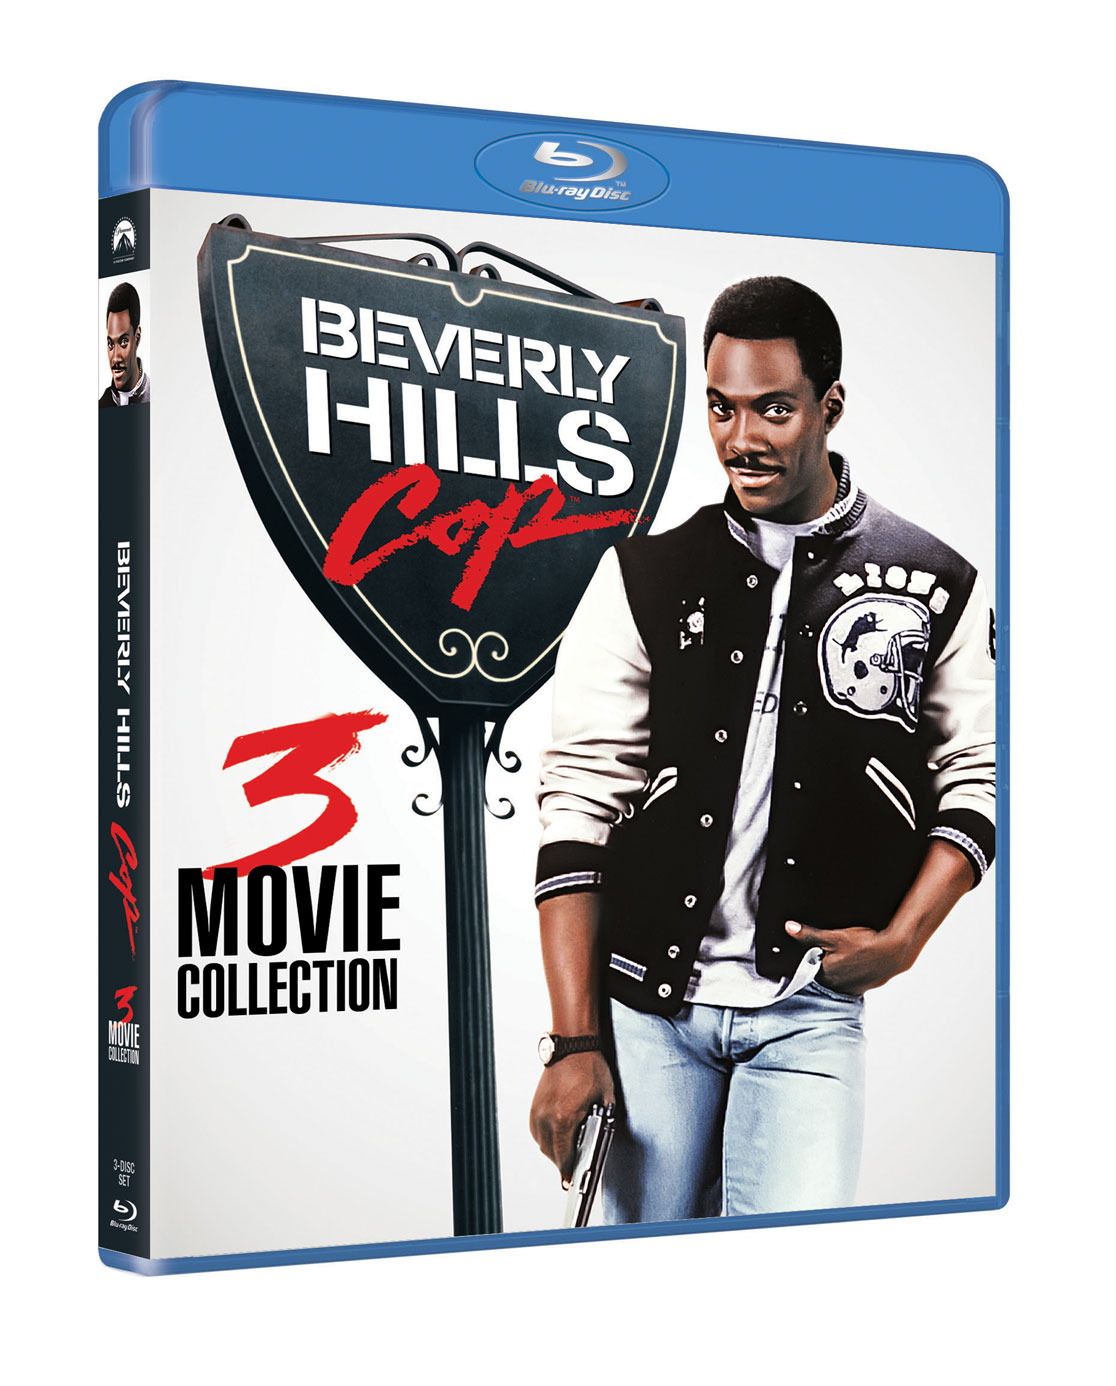 COF.BEVERLY HILLS COP COLLECTION (REMASTERED) - BLU RAY